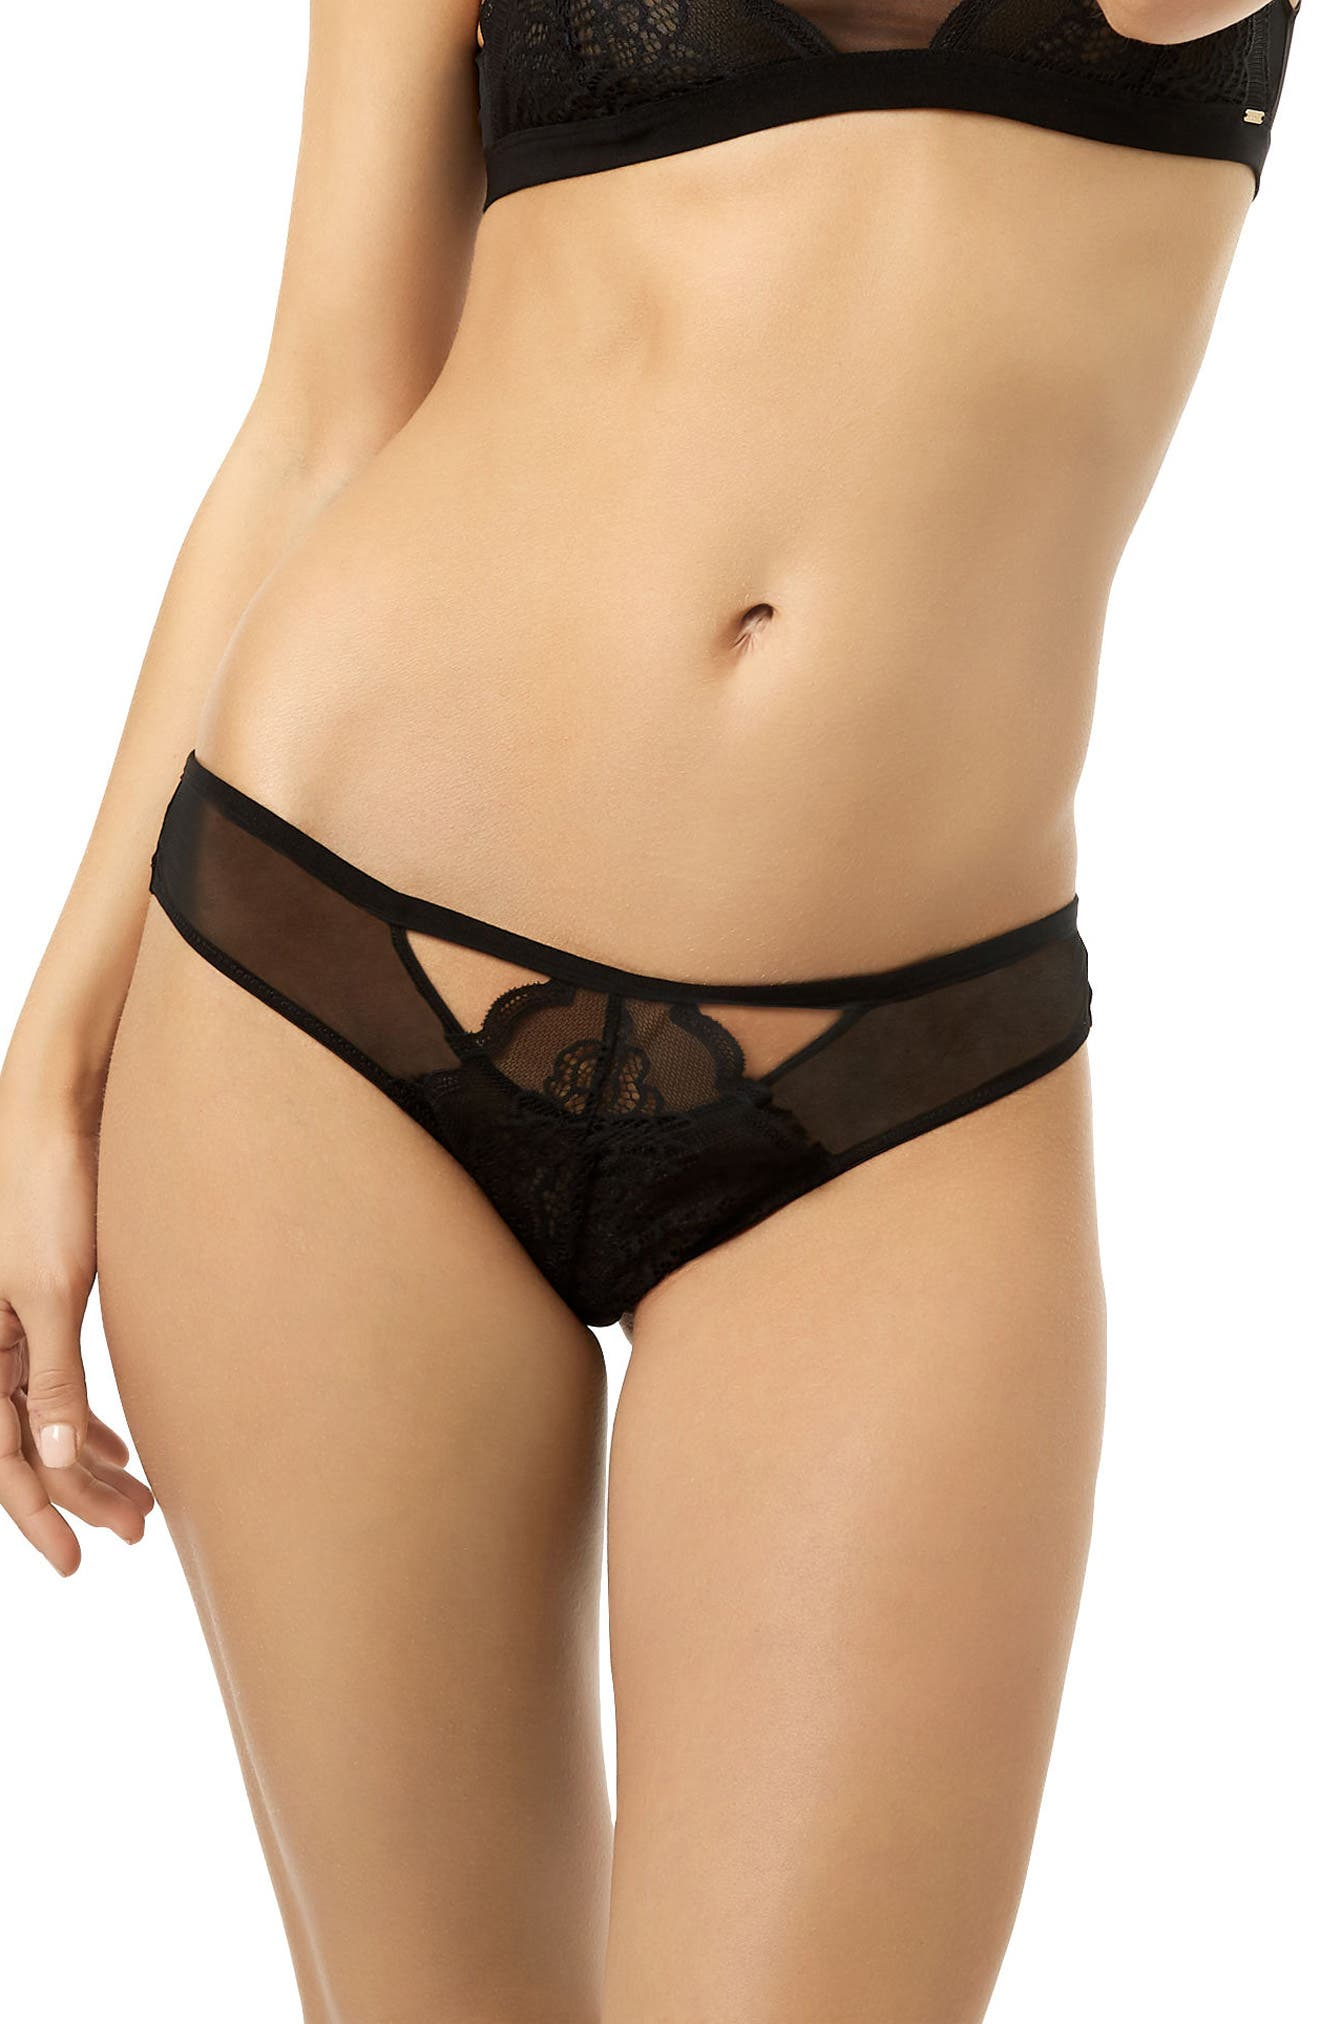 Astrid Cutout Panties,                             Main thumbnail 1, color,                             Black